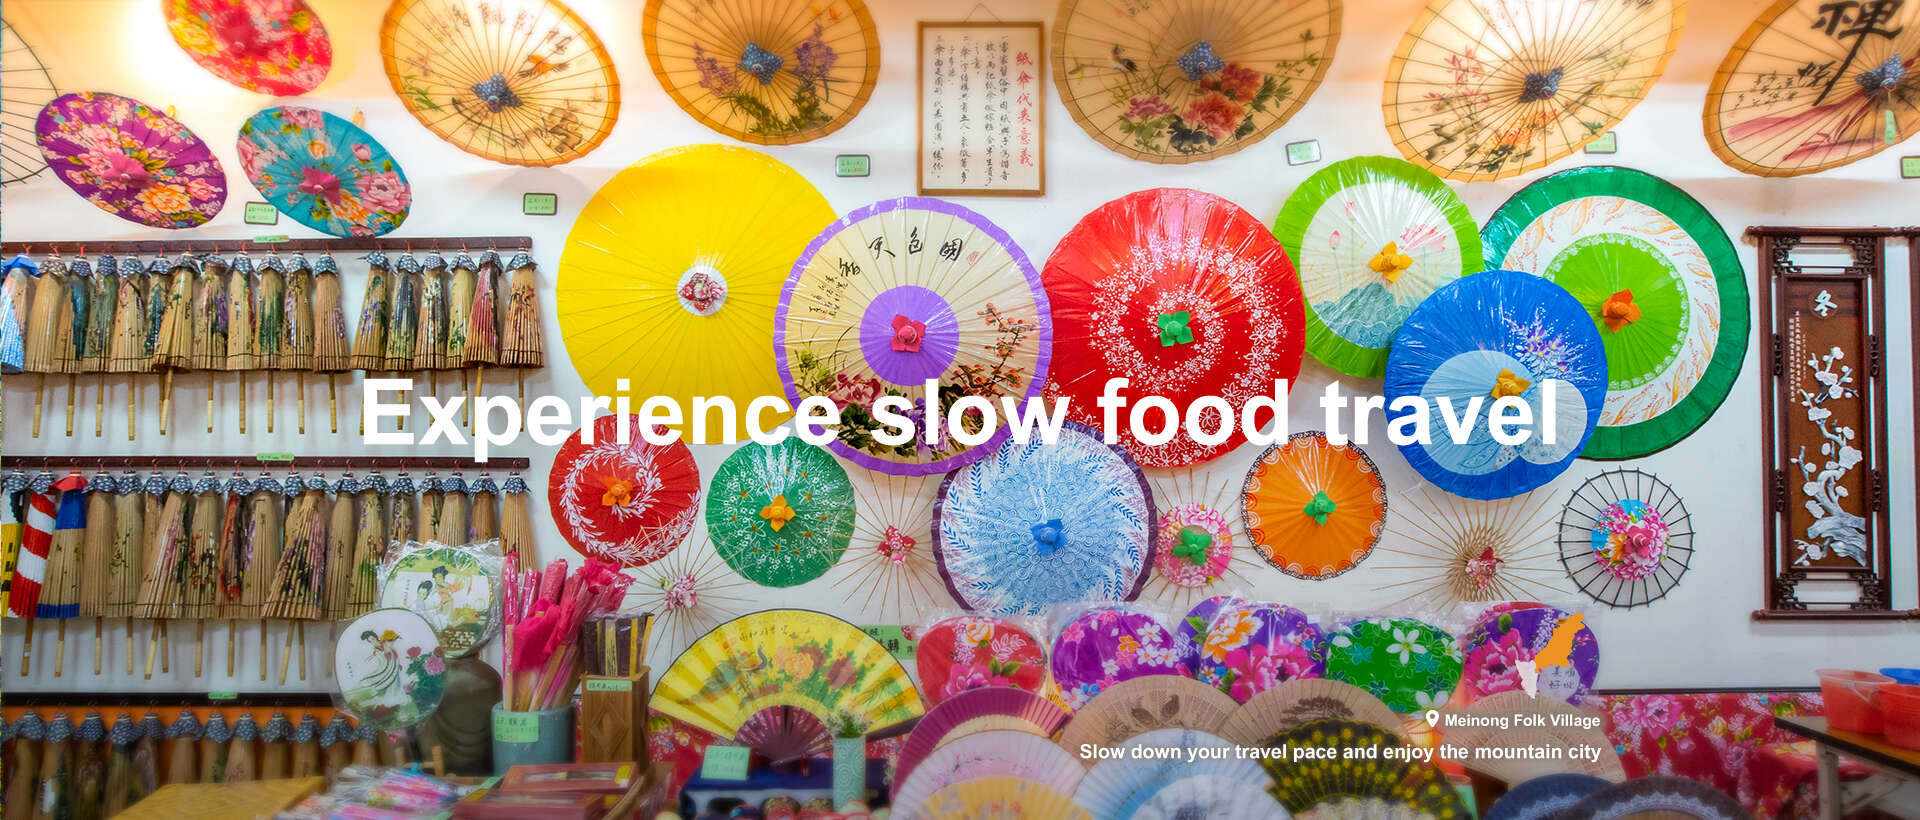 Experience slow food travel